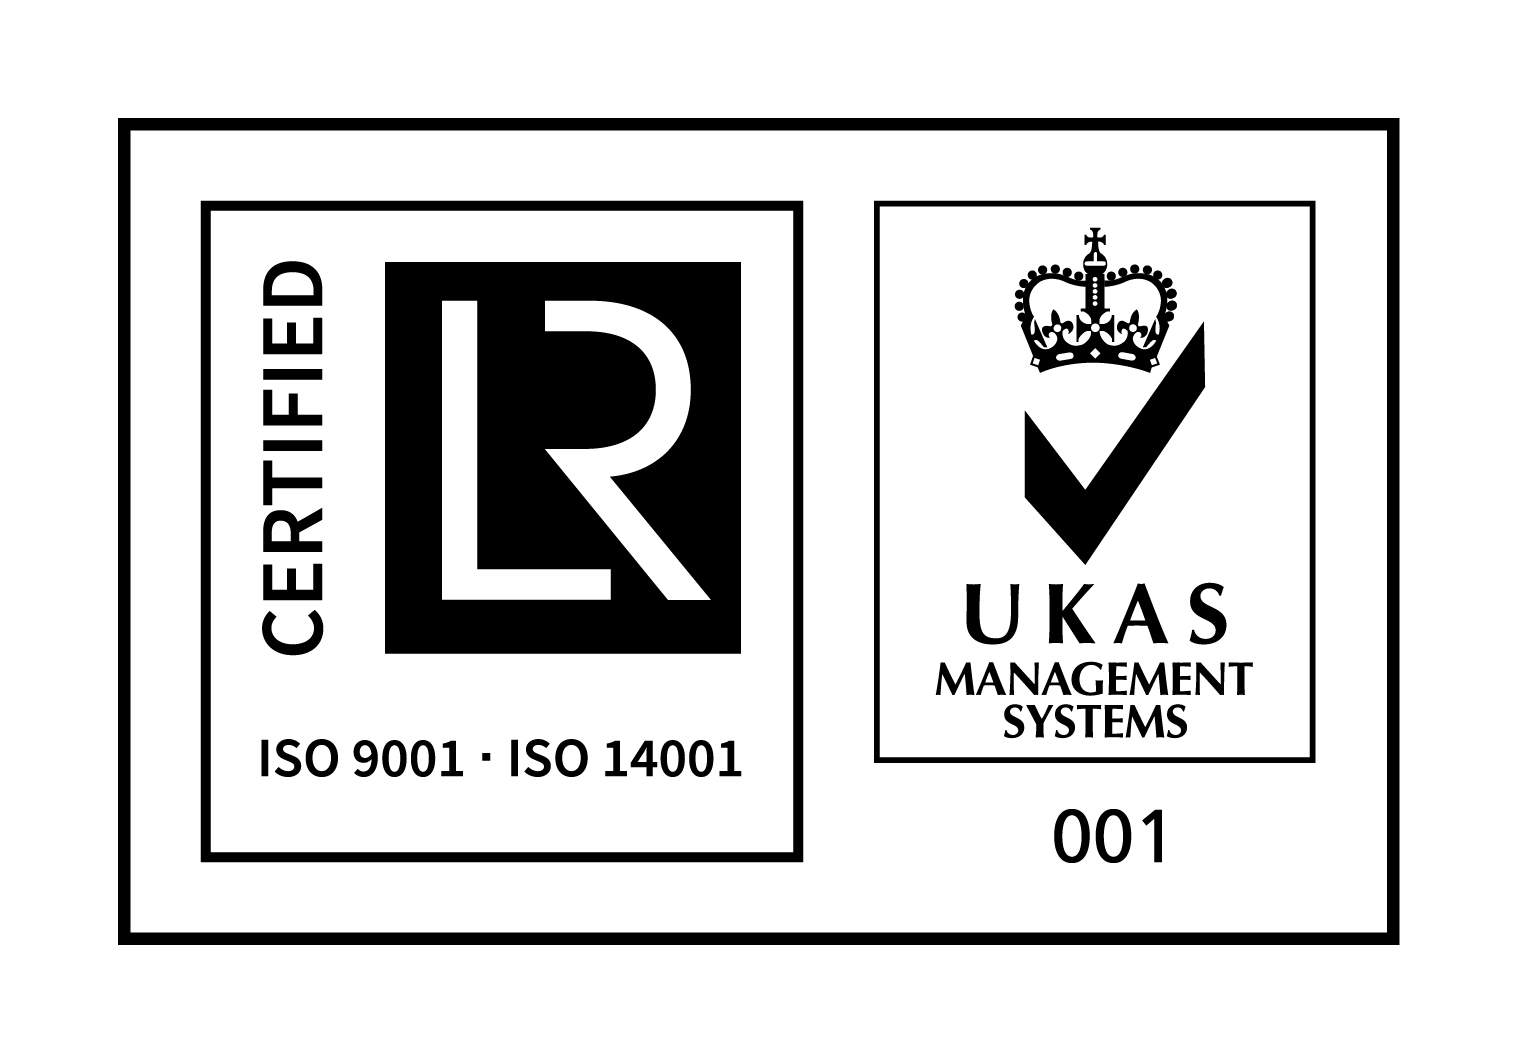 UKAS AND ISO 9001 AND ISO 14001 CMYK MARK